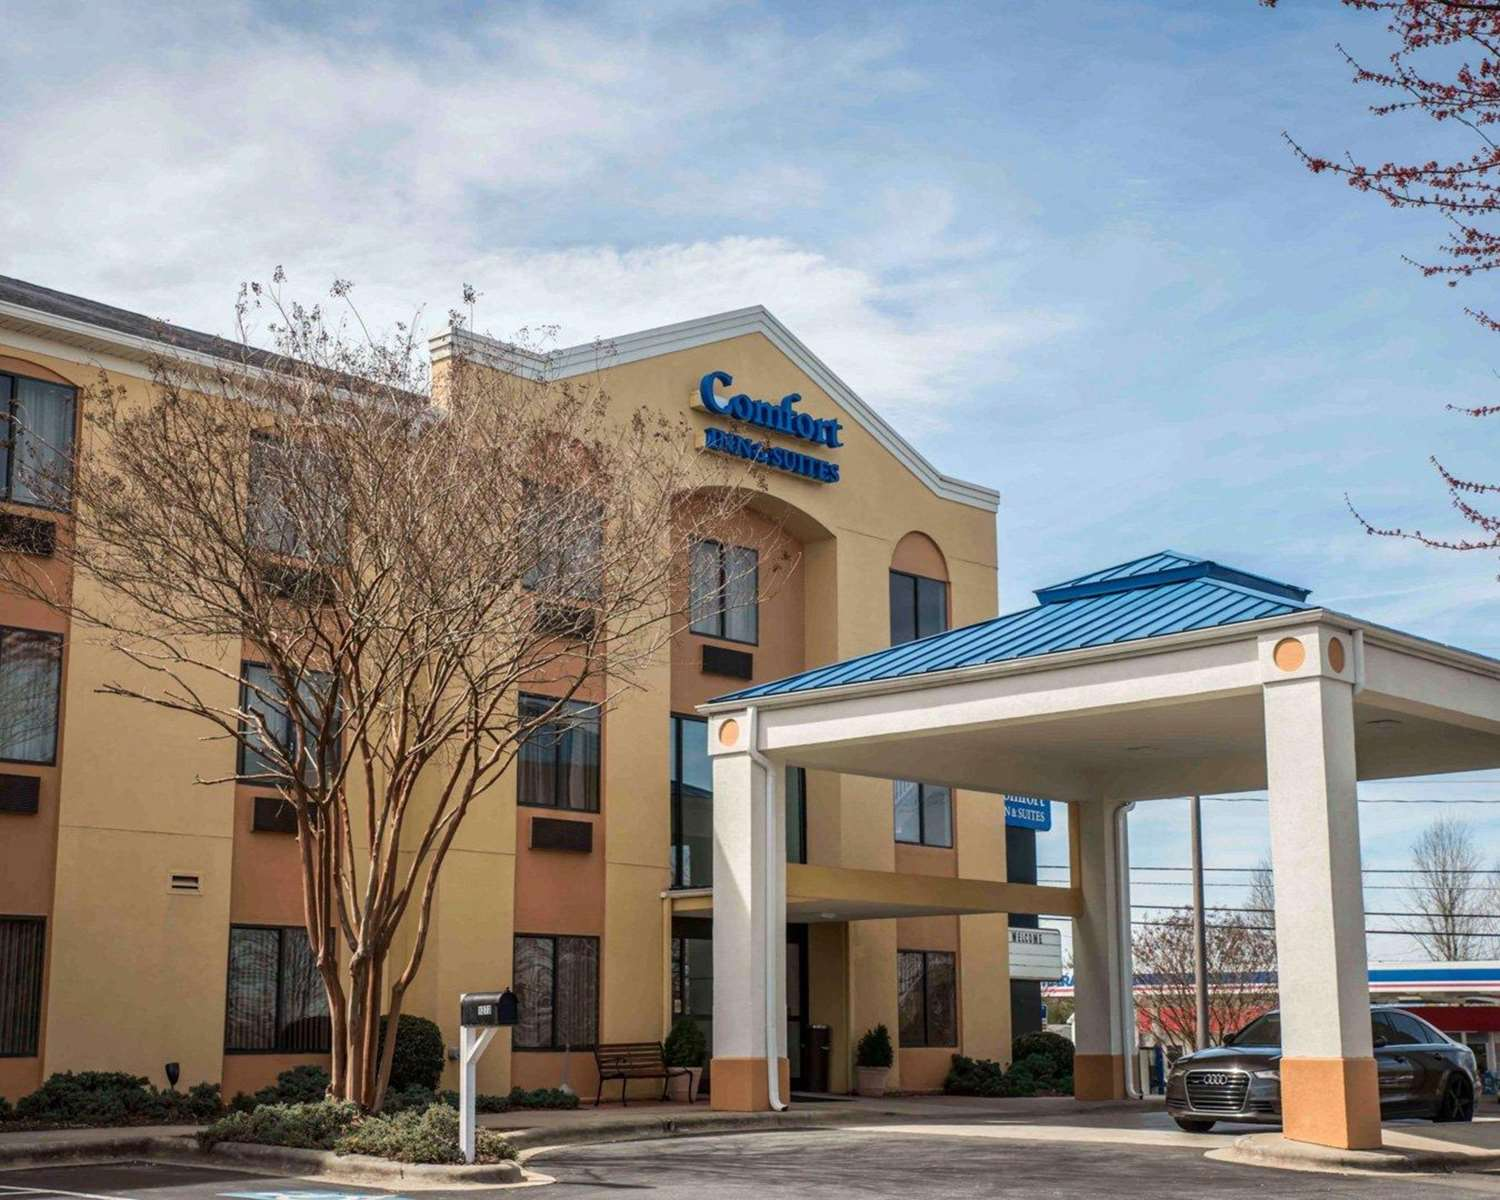 Comfort Inn & Suites Morganton